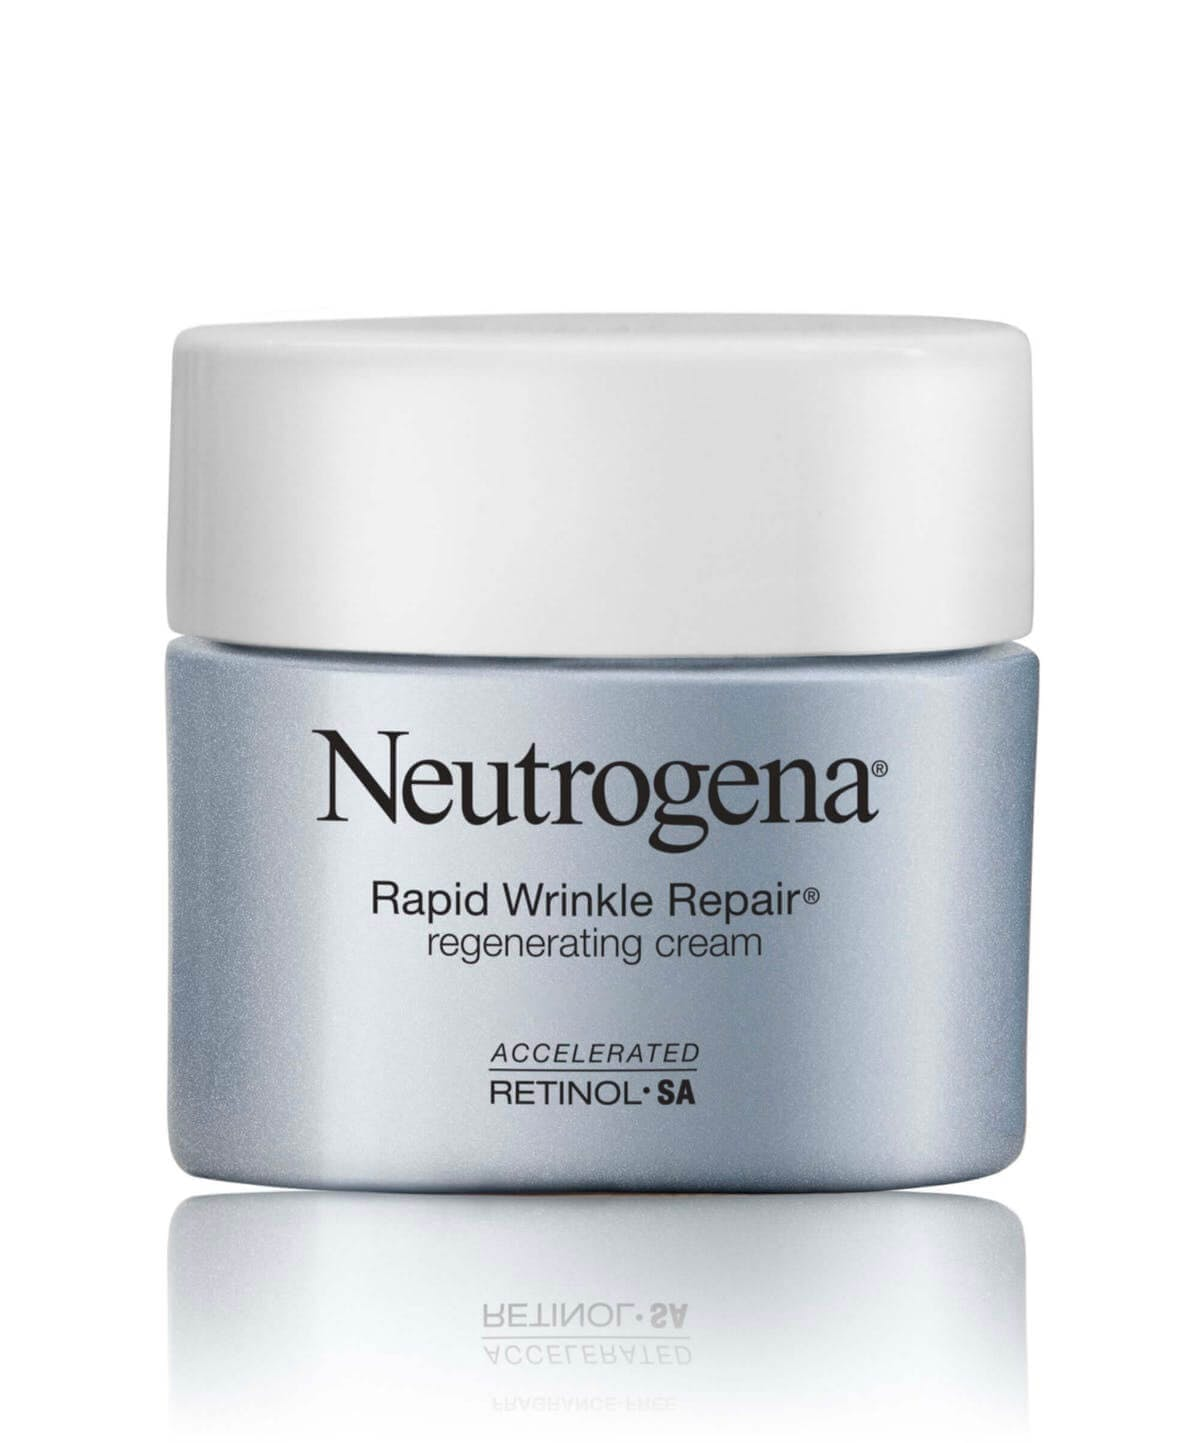 Anti Wrinkle Regenerating Face Cream With Retinol Neutrogena